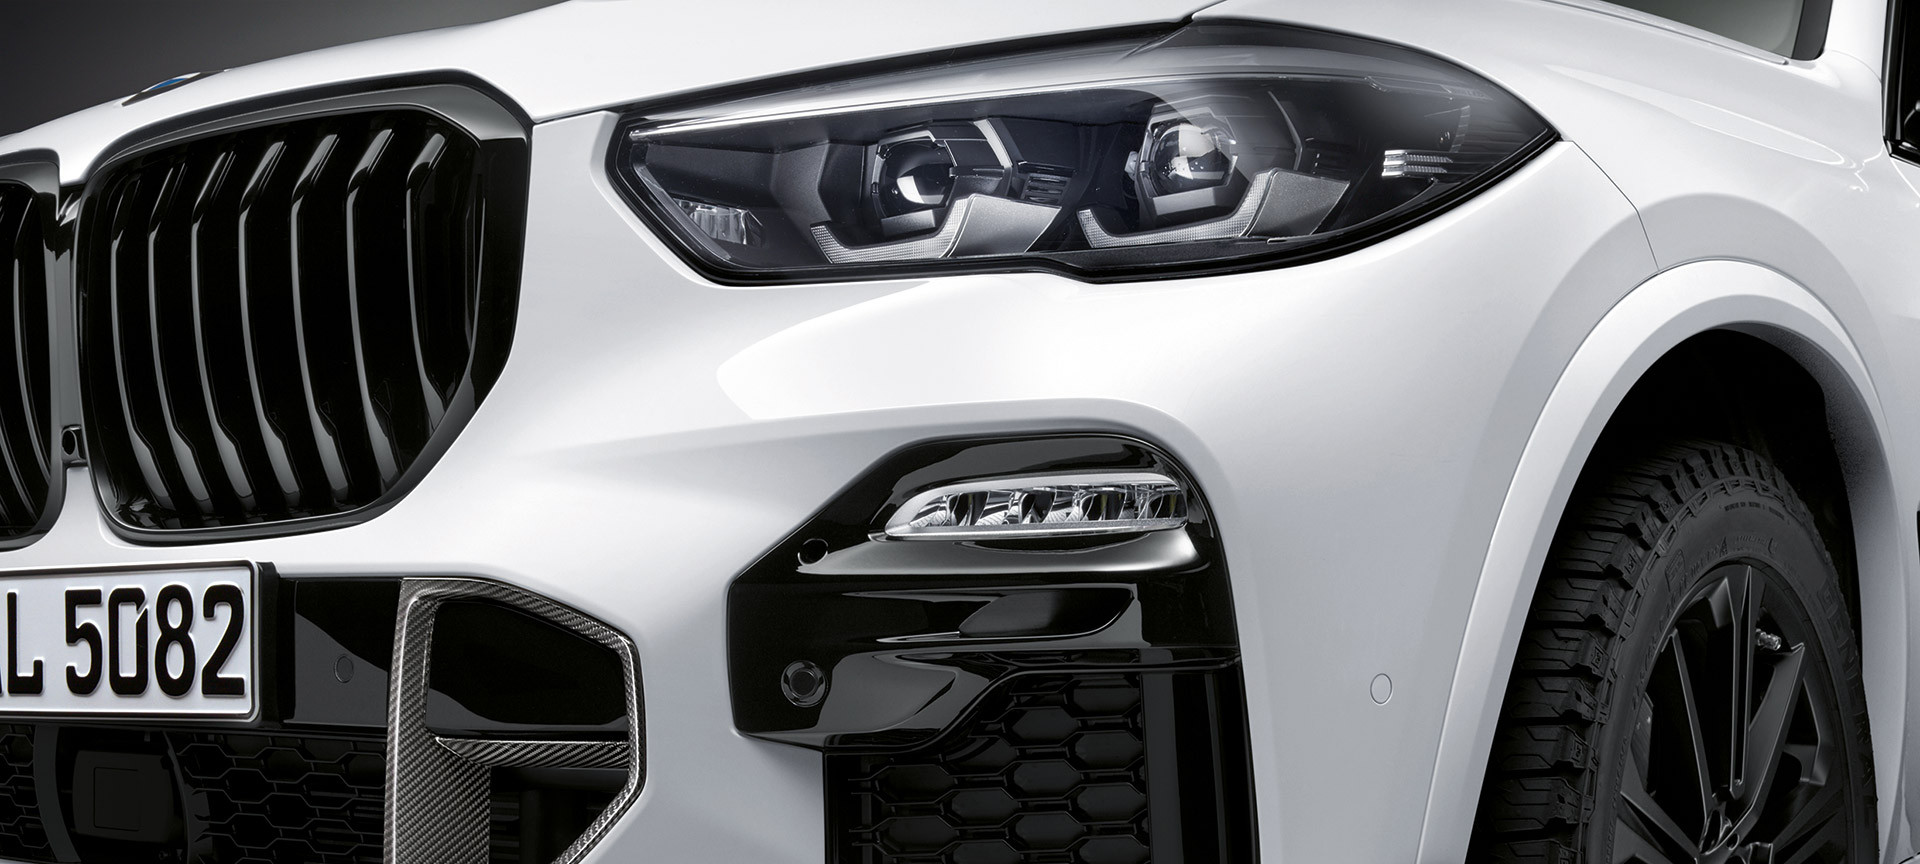 Bmw X5 Accessories Discover Bmw